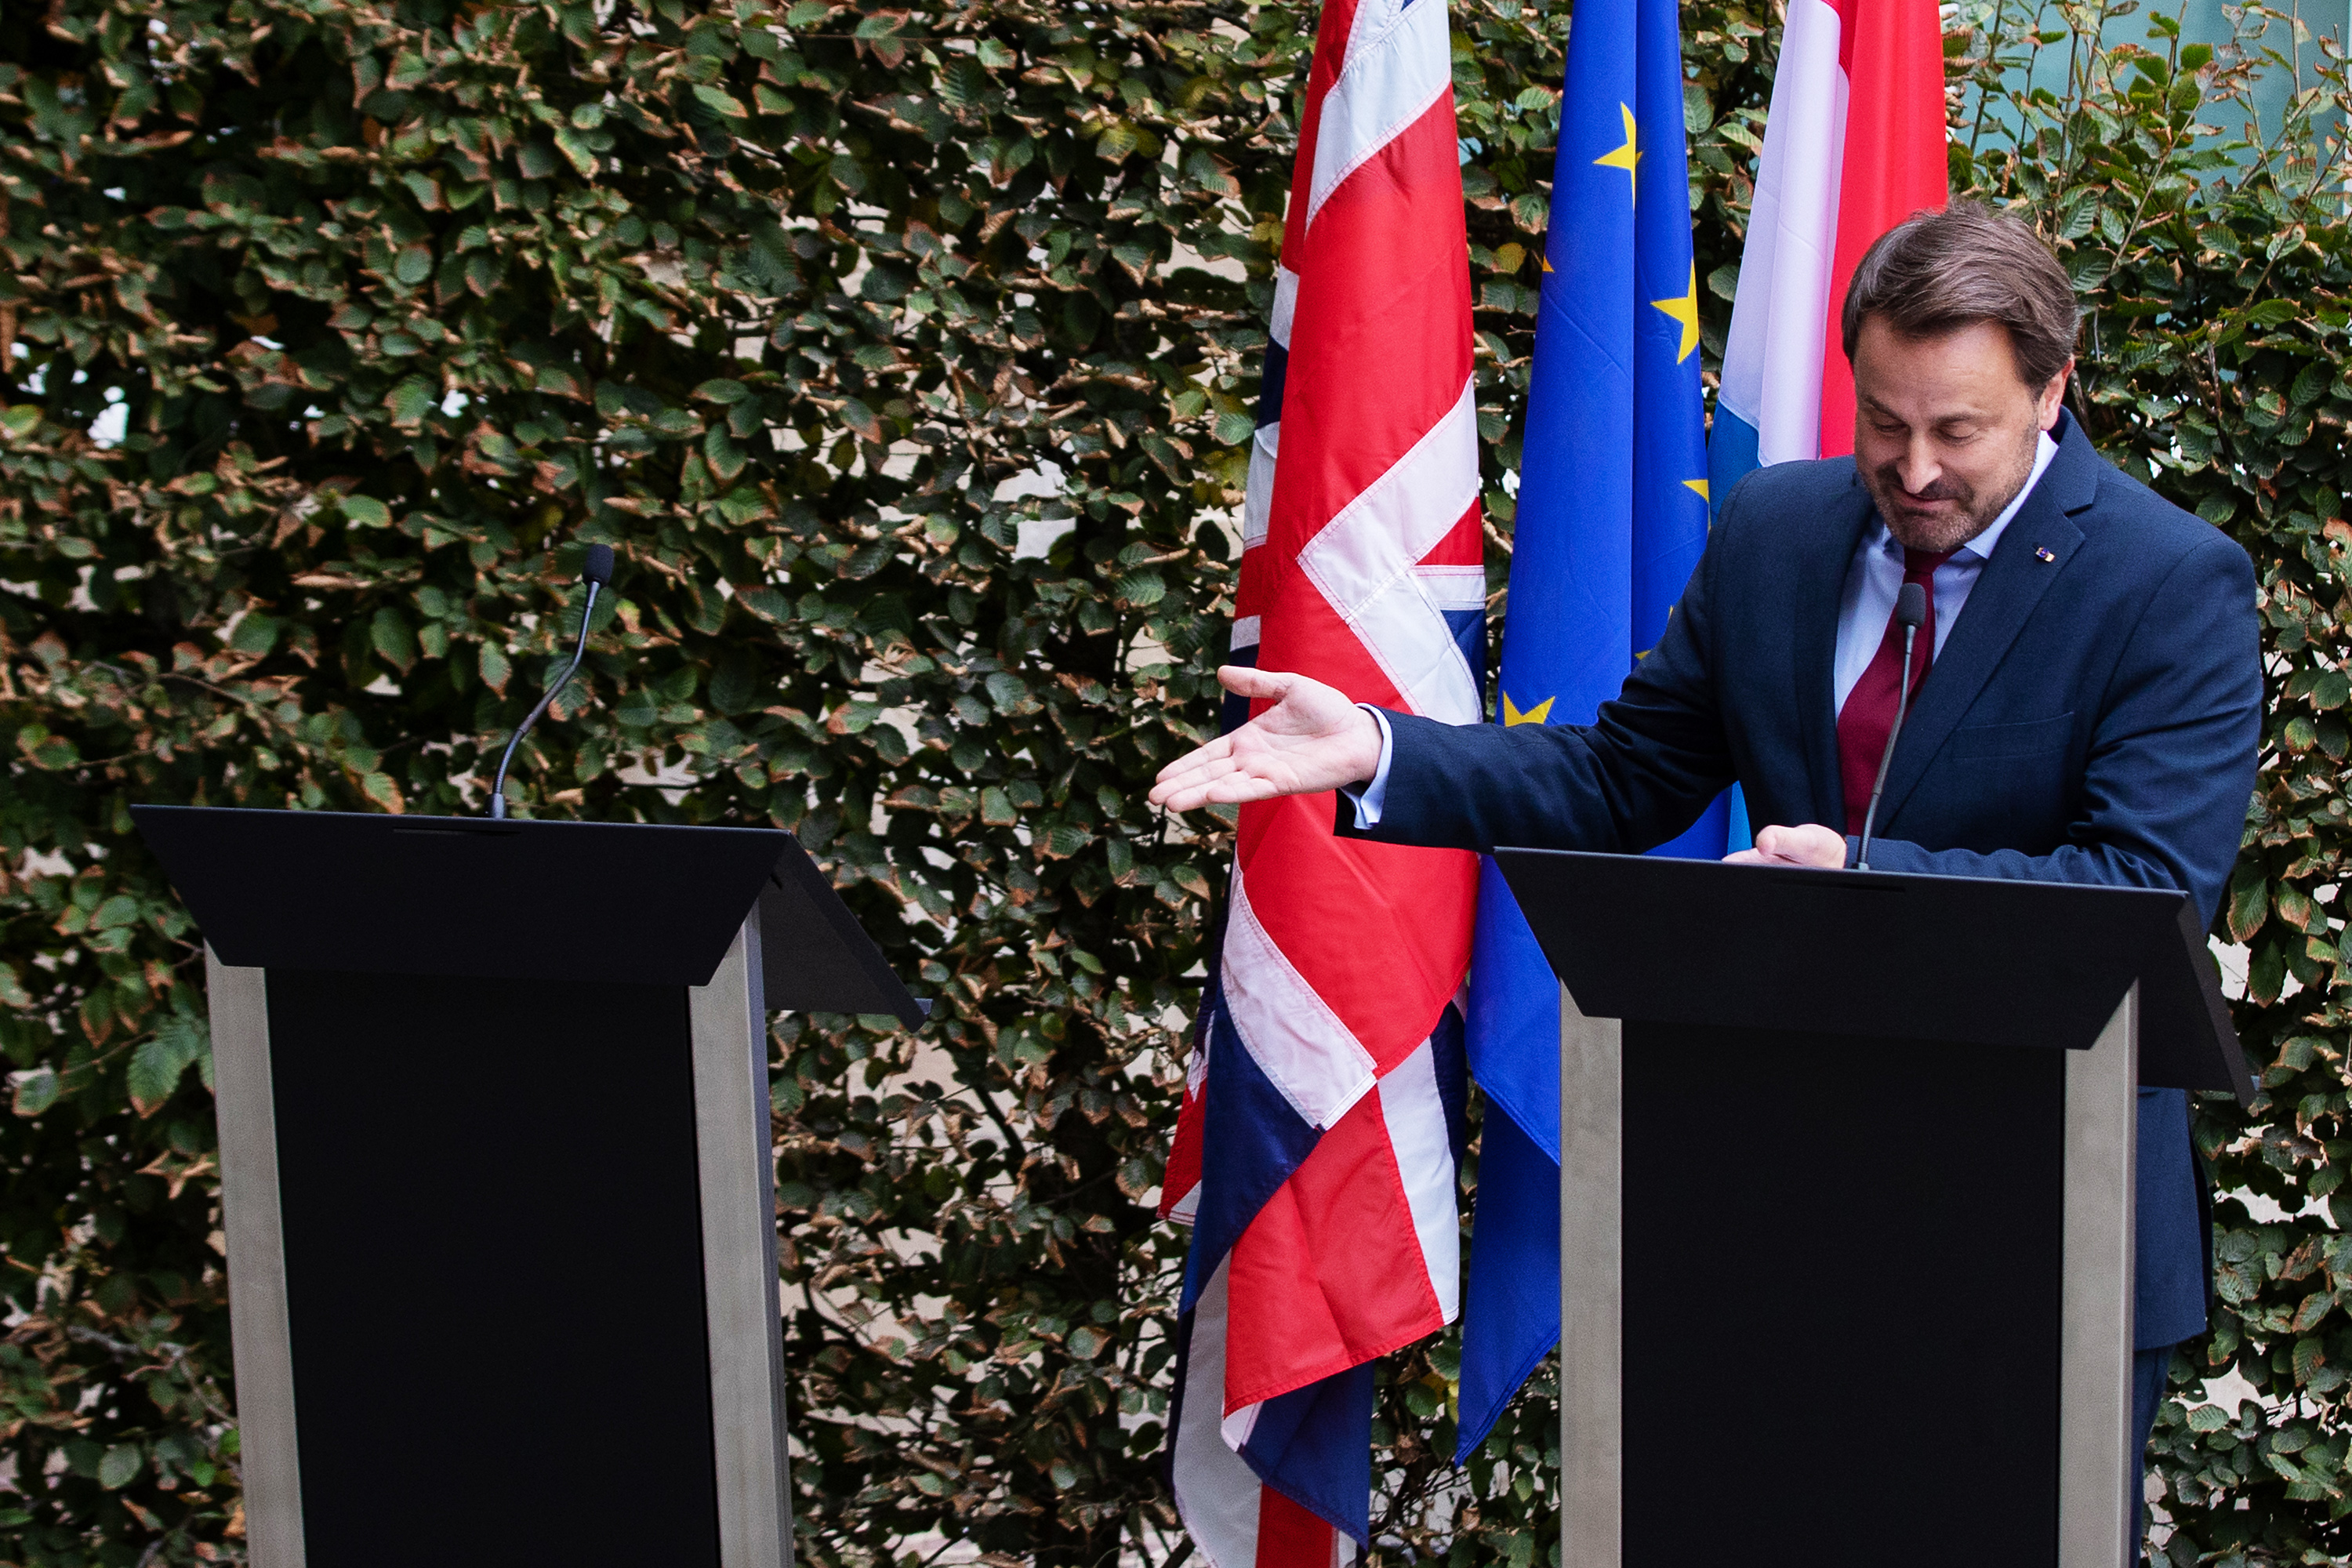 Luxembourg Prime Minister Xavier Bettel stands at a podium and gestures to another podium, which has no one standing behind it.